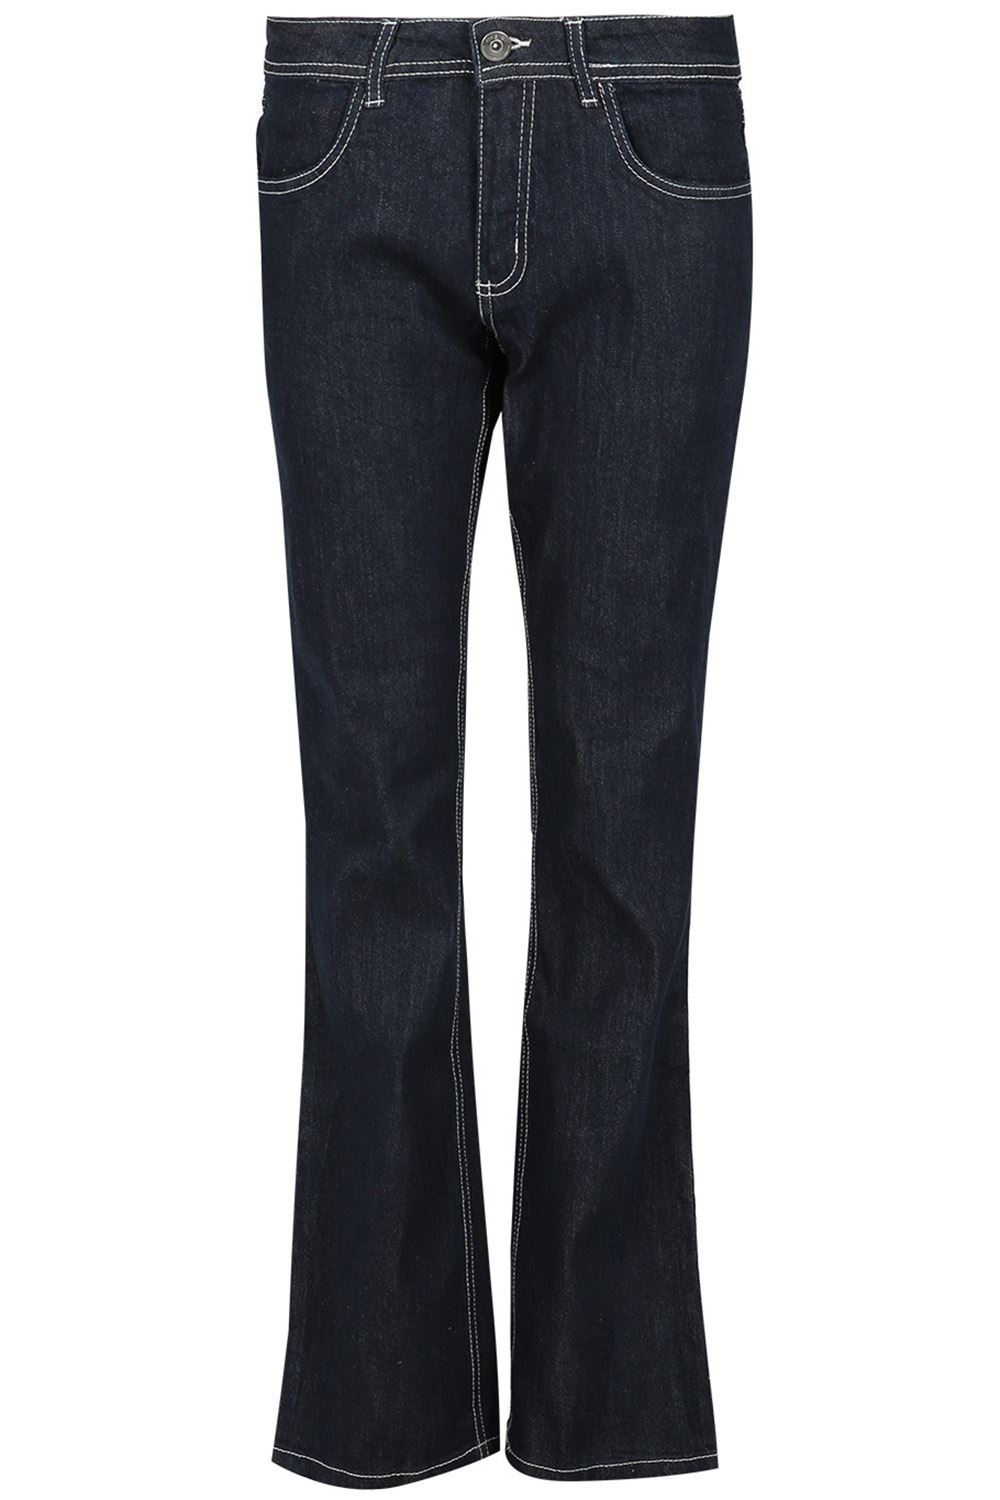 Shop for women denim trouser pants online at Target. Free shipping on purchases over $35 and save 5% every day with your Target REDcard. skip to main content skip to footer. Women's High-Rise Wide Leg Denim Trousers - A New Day™ Indigo.